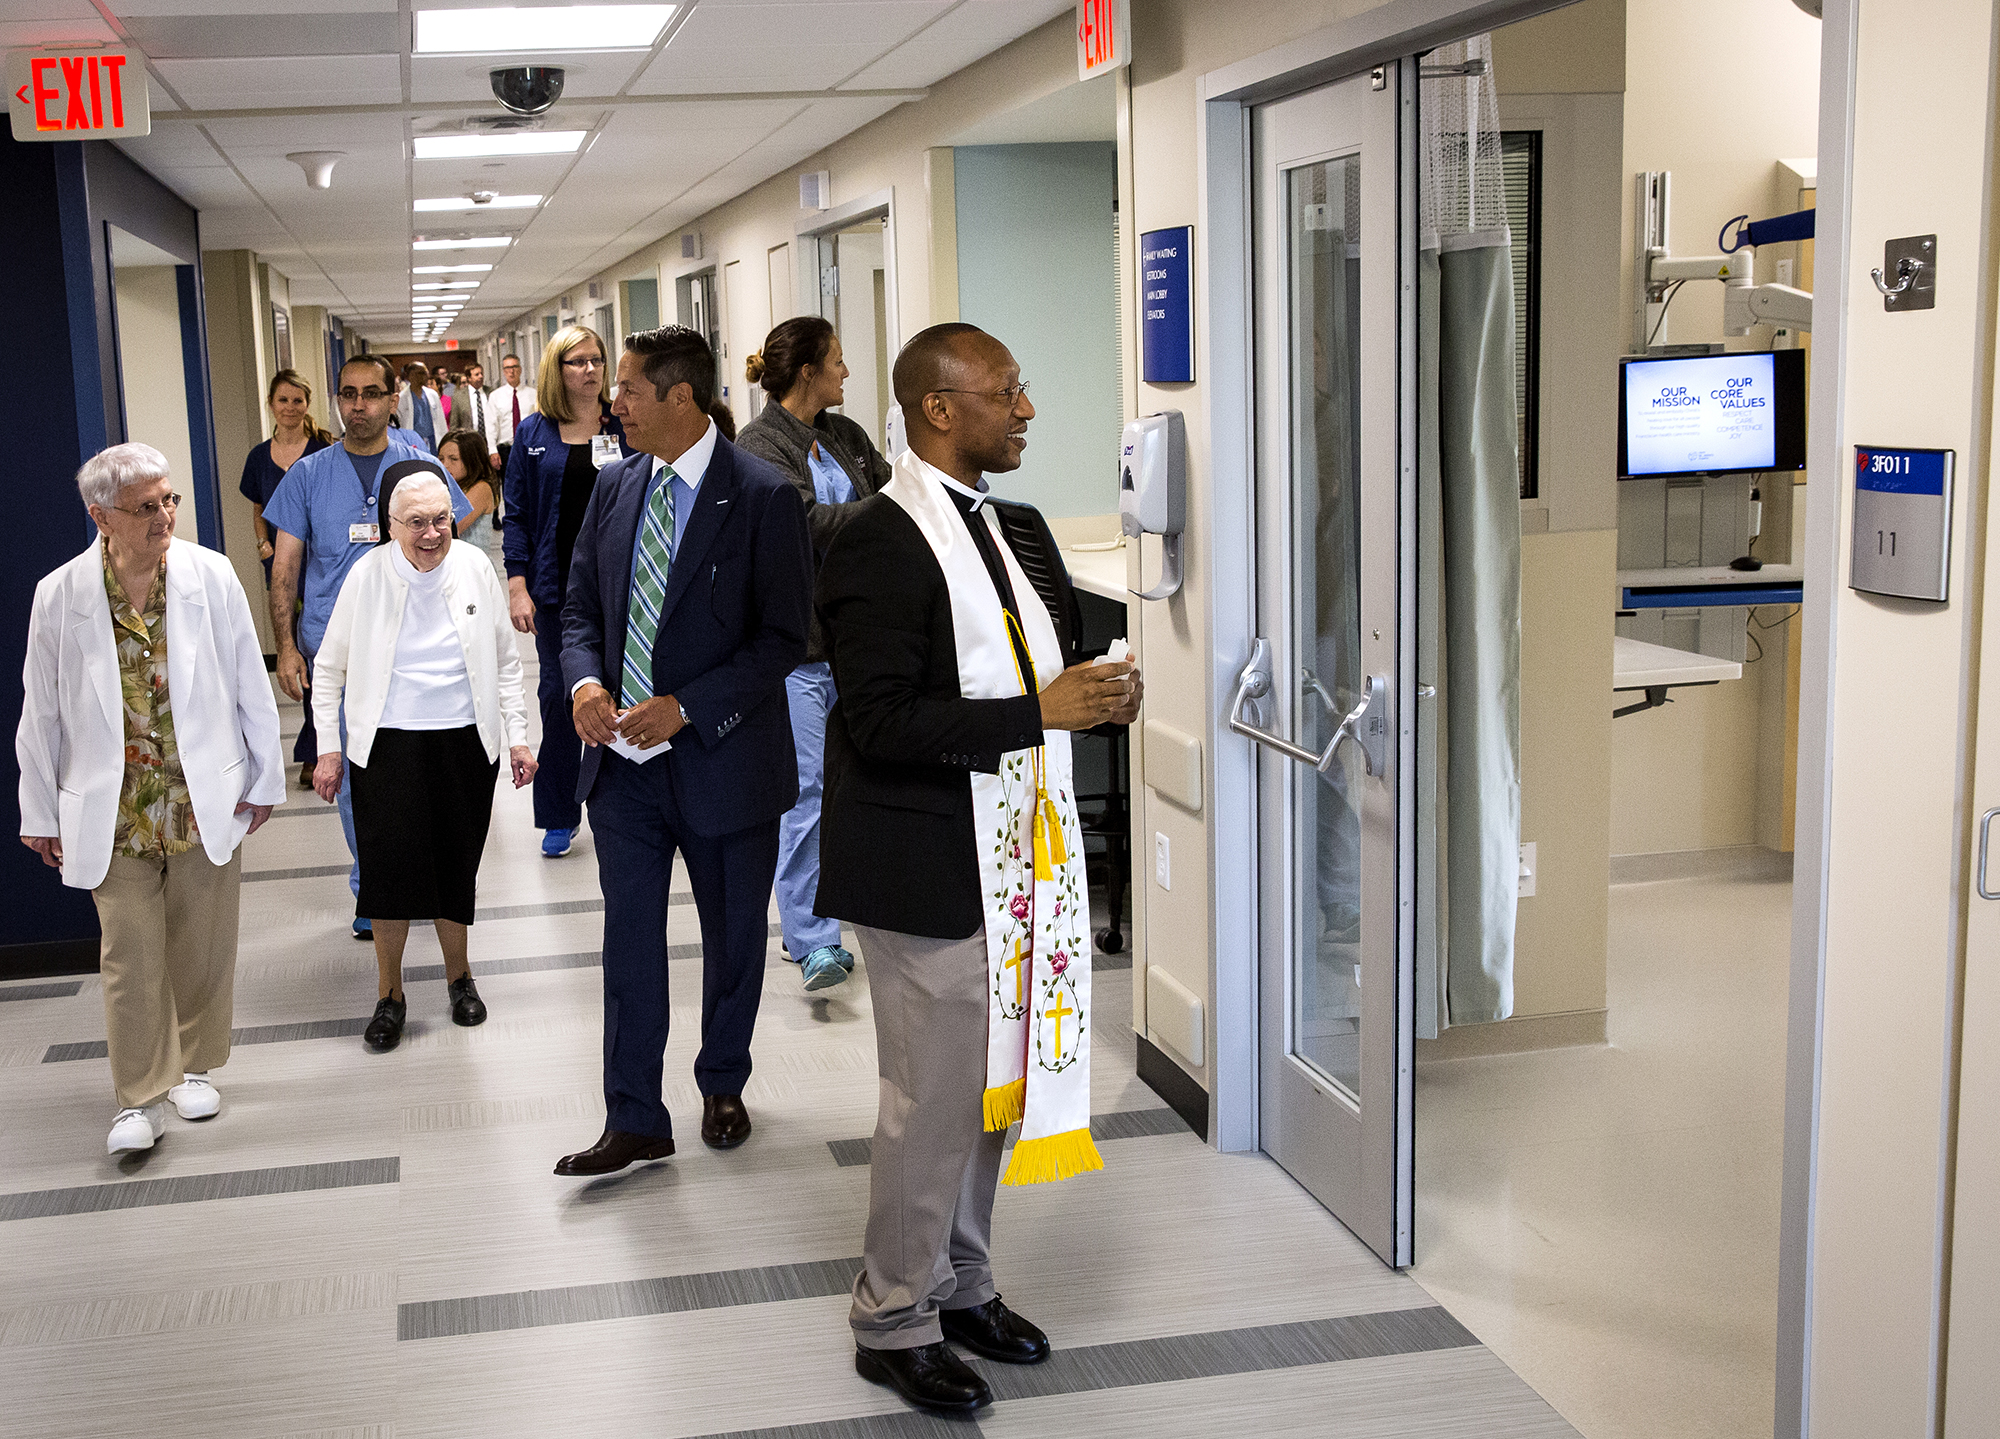 Fr. Fredrick Mbiere, HSHS St. JohnÕs Hospital chaplain, blesses rooms in the hospital's new 14-bed cardiovascular intensive care unit at the Prairie Heart Institute Monday, July 9, 2018 in Springfield, Ill. The $7.9 million project adds larger rooms that include showers, reclining chairs, televisions, storage space for personal belongings and large windows for access to natural light to help with the healing process. The space will be open for patients next Monday. [Rich Saal/The State Journal-Register]